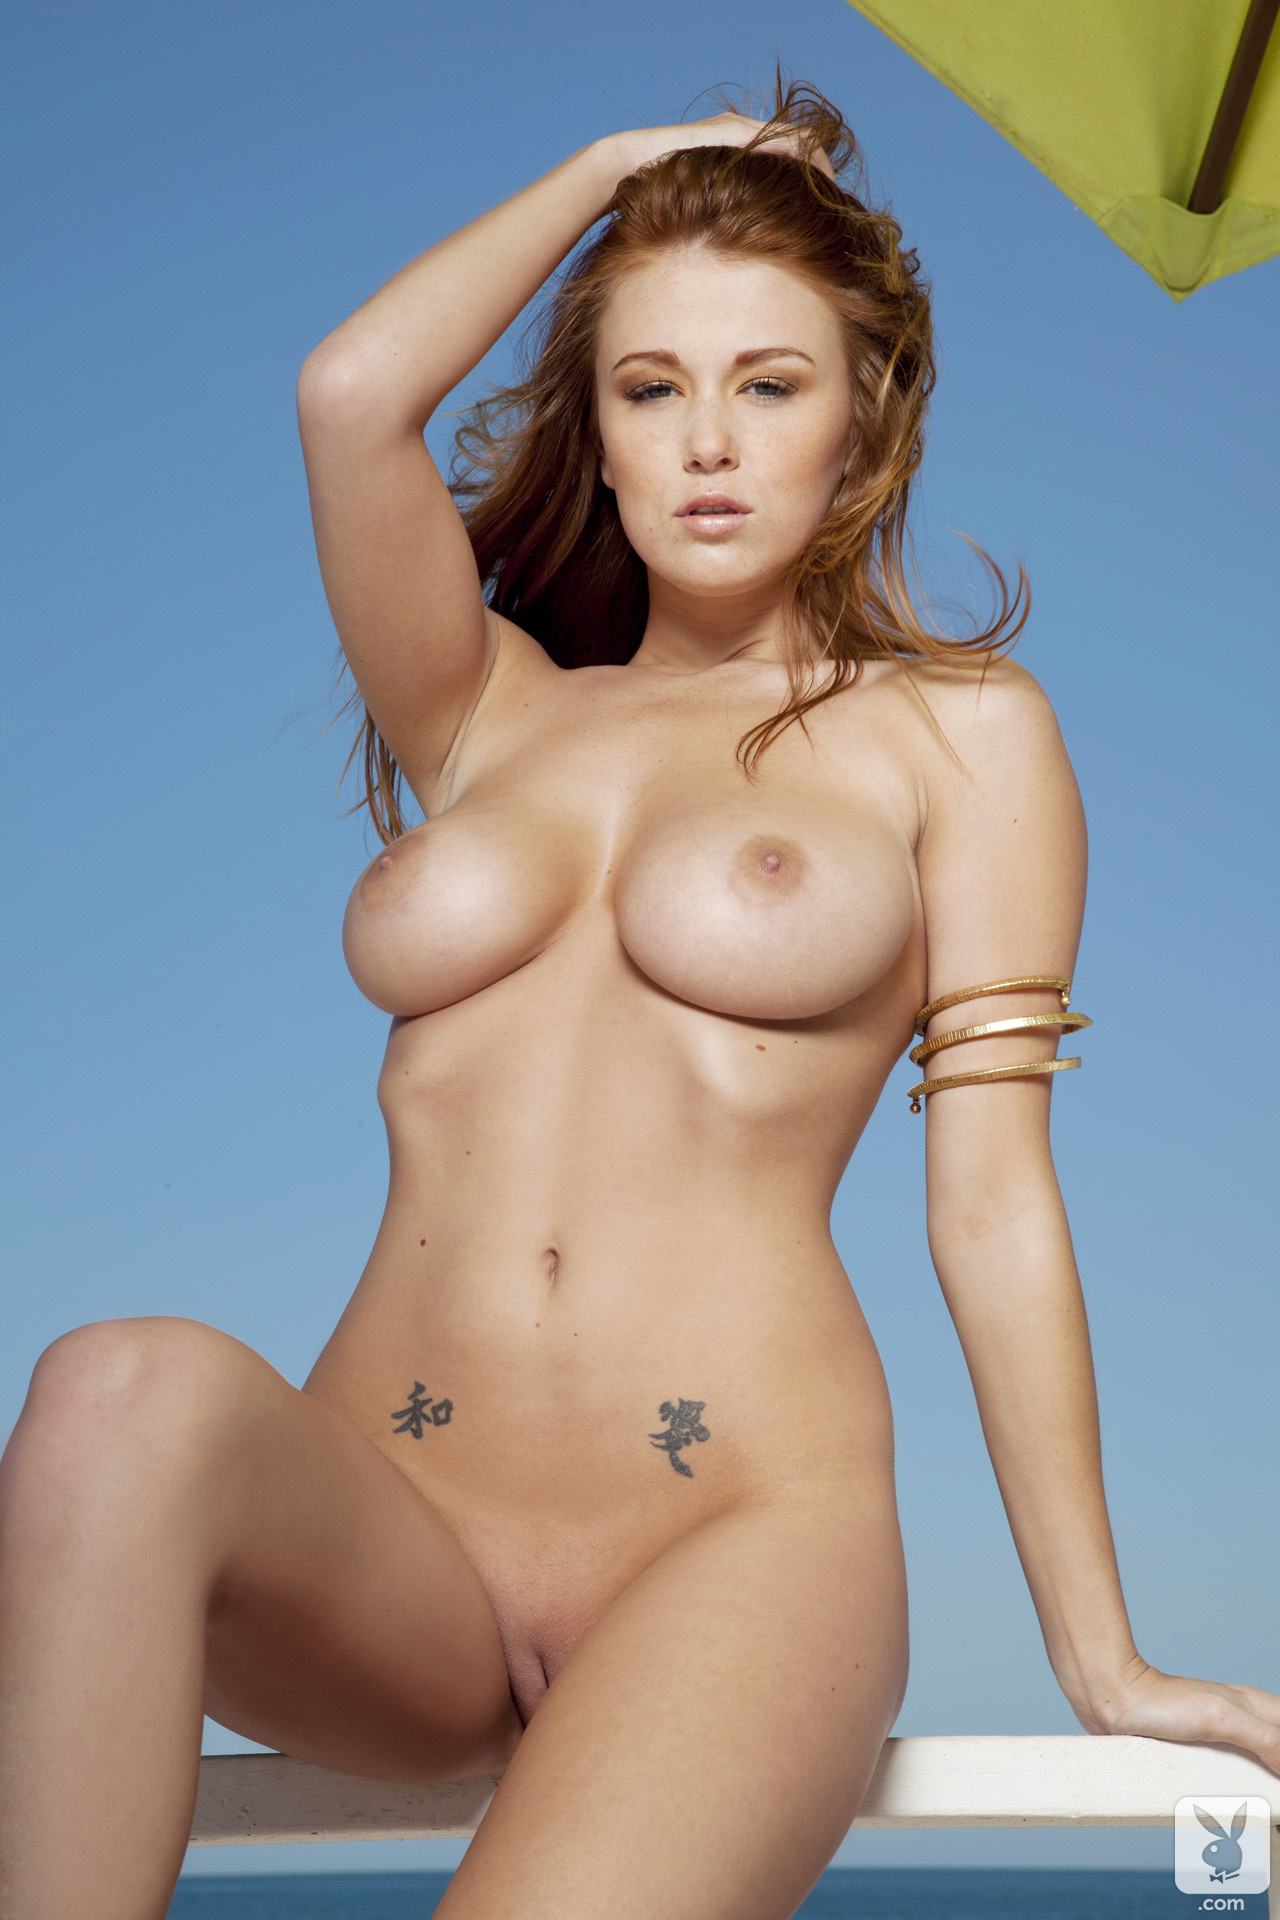 leanna-decker-bikini-boobs-redhead-seaside-playboy-25